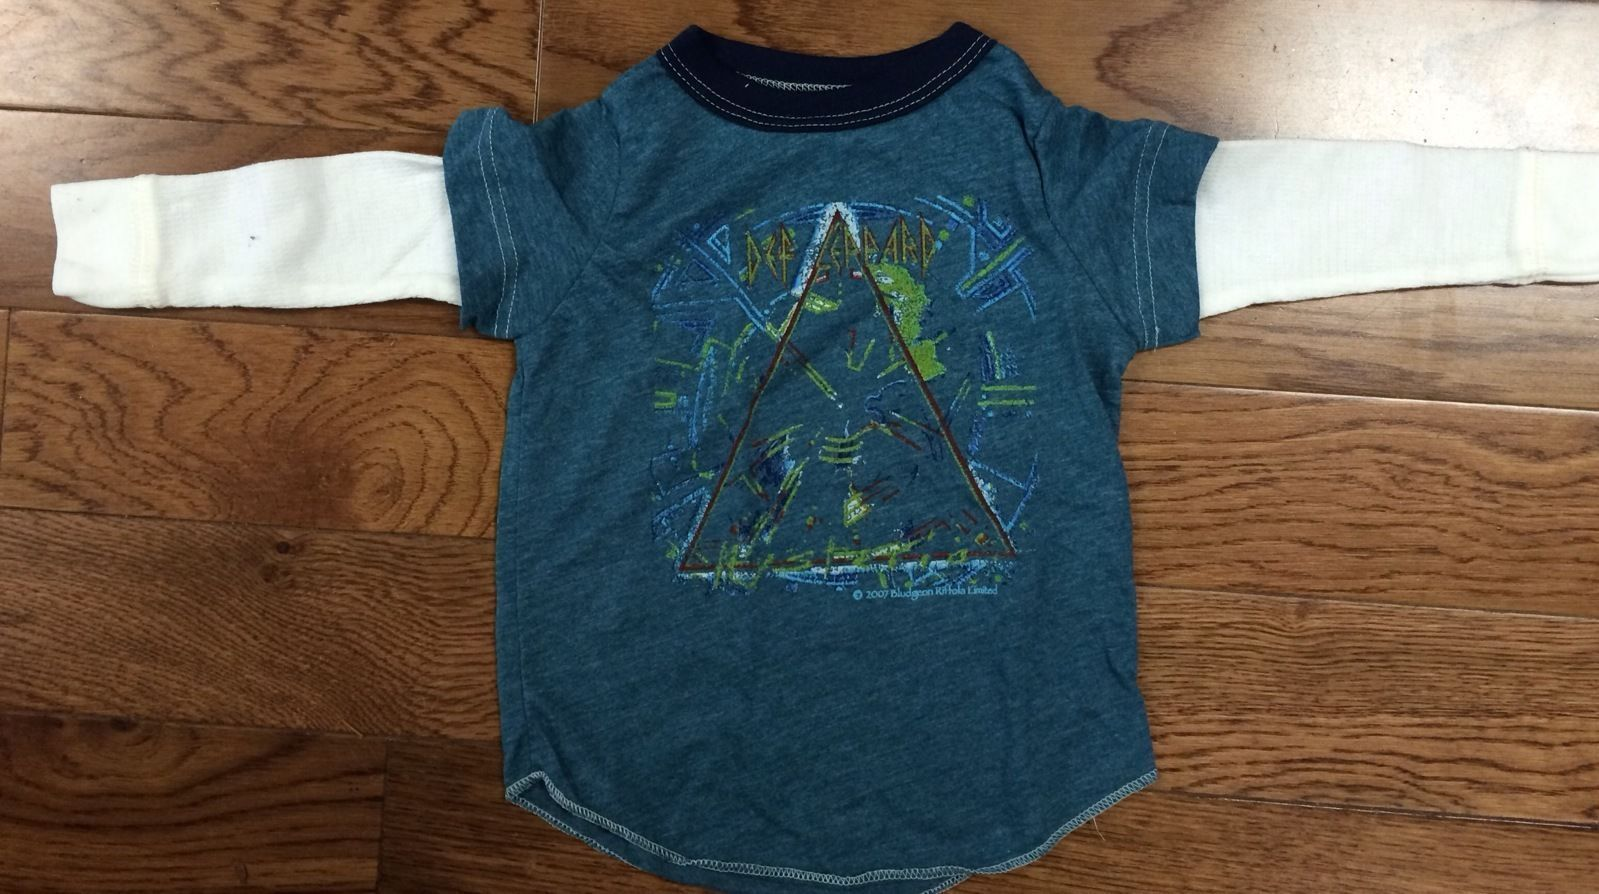 a0003d798 S l1600. S l1600. New Authentic Rowdy Sprout Kids Def Leppard Pyromania  2fer Shirt Rocker Tees